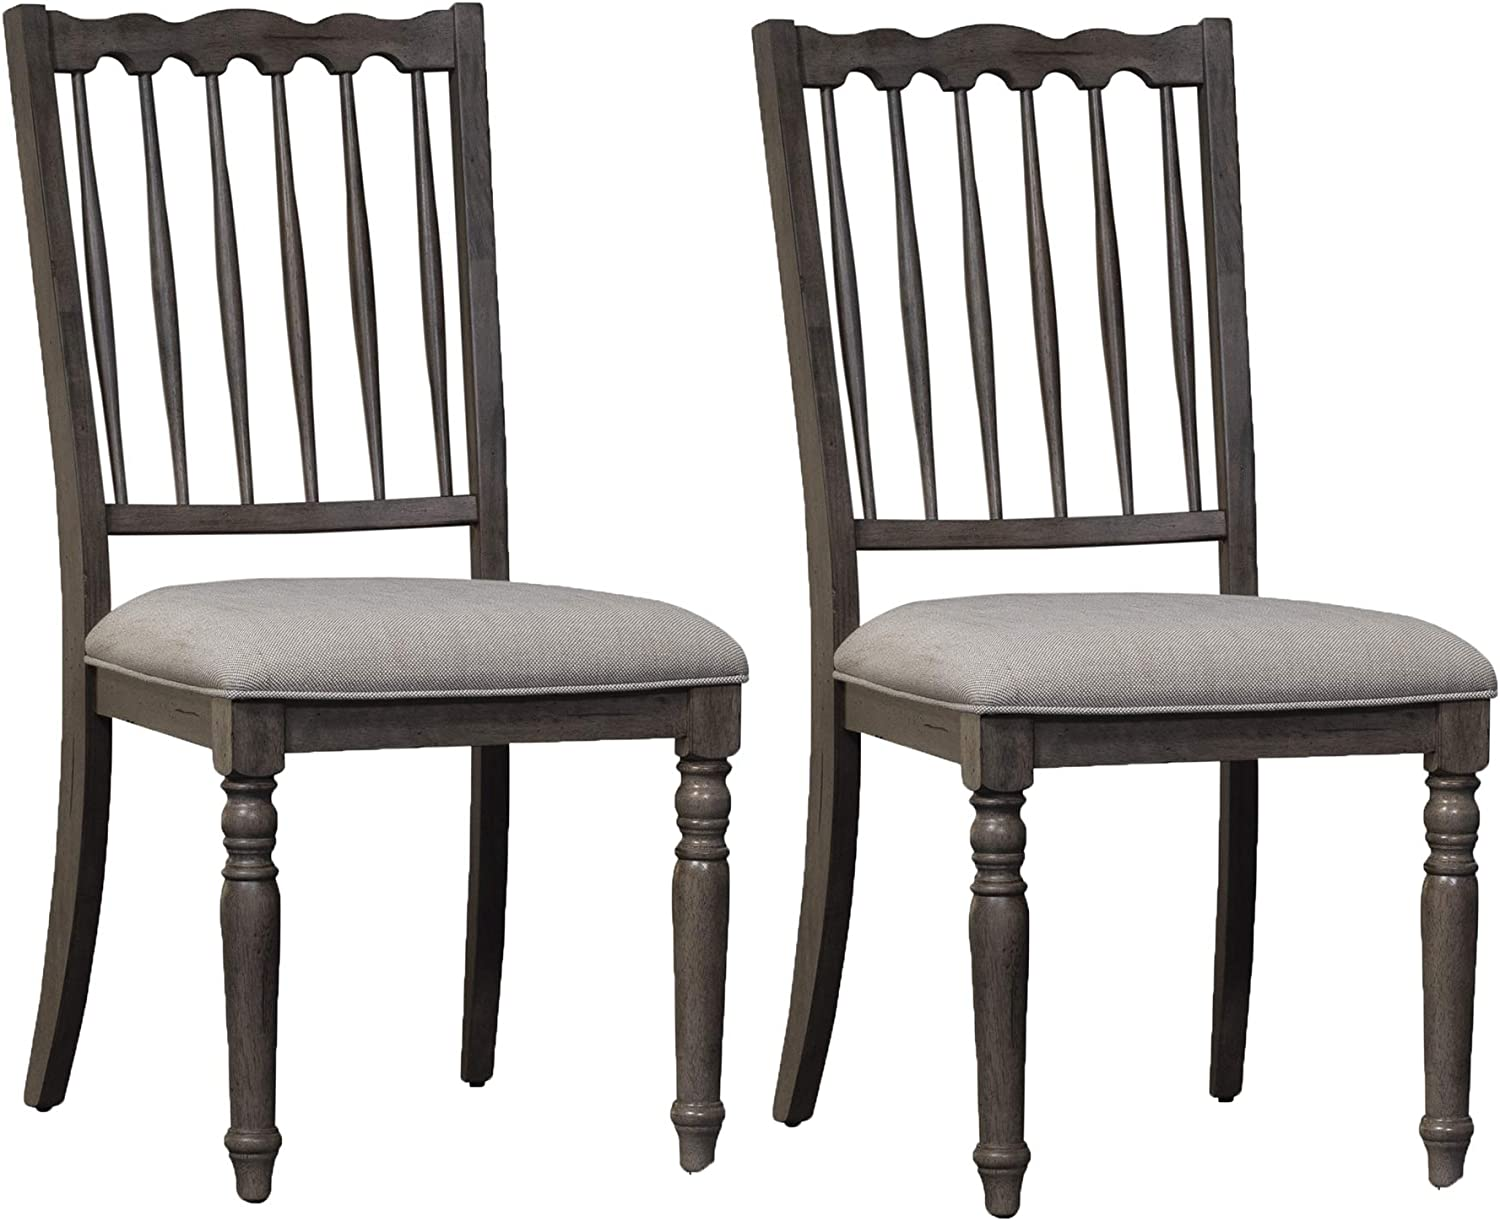 Liberty Furniture Industries Brandywine (Set of 2) Dining Chairs, Light Gray